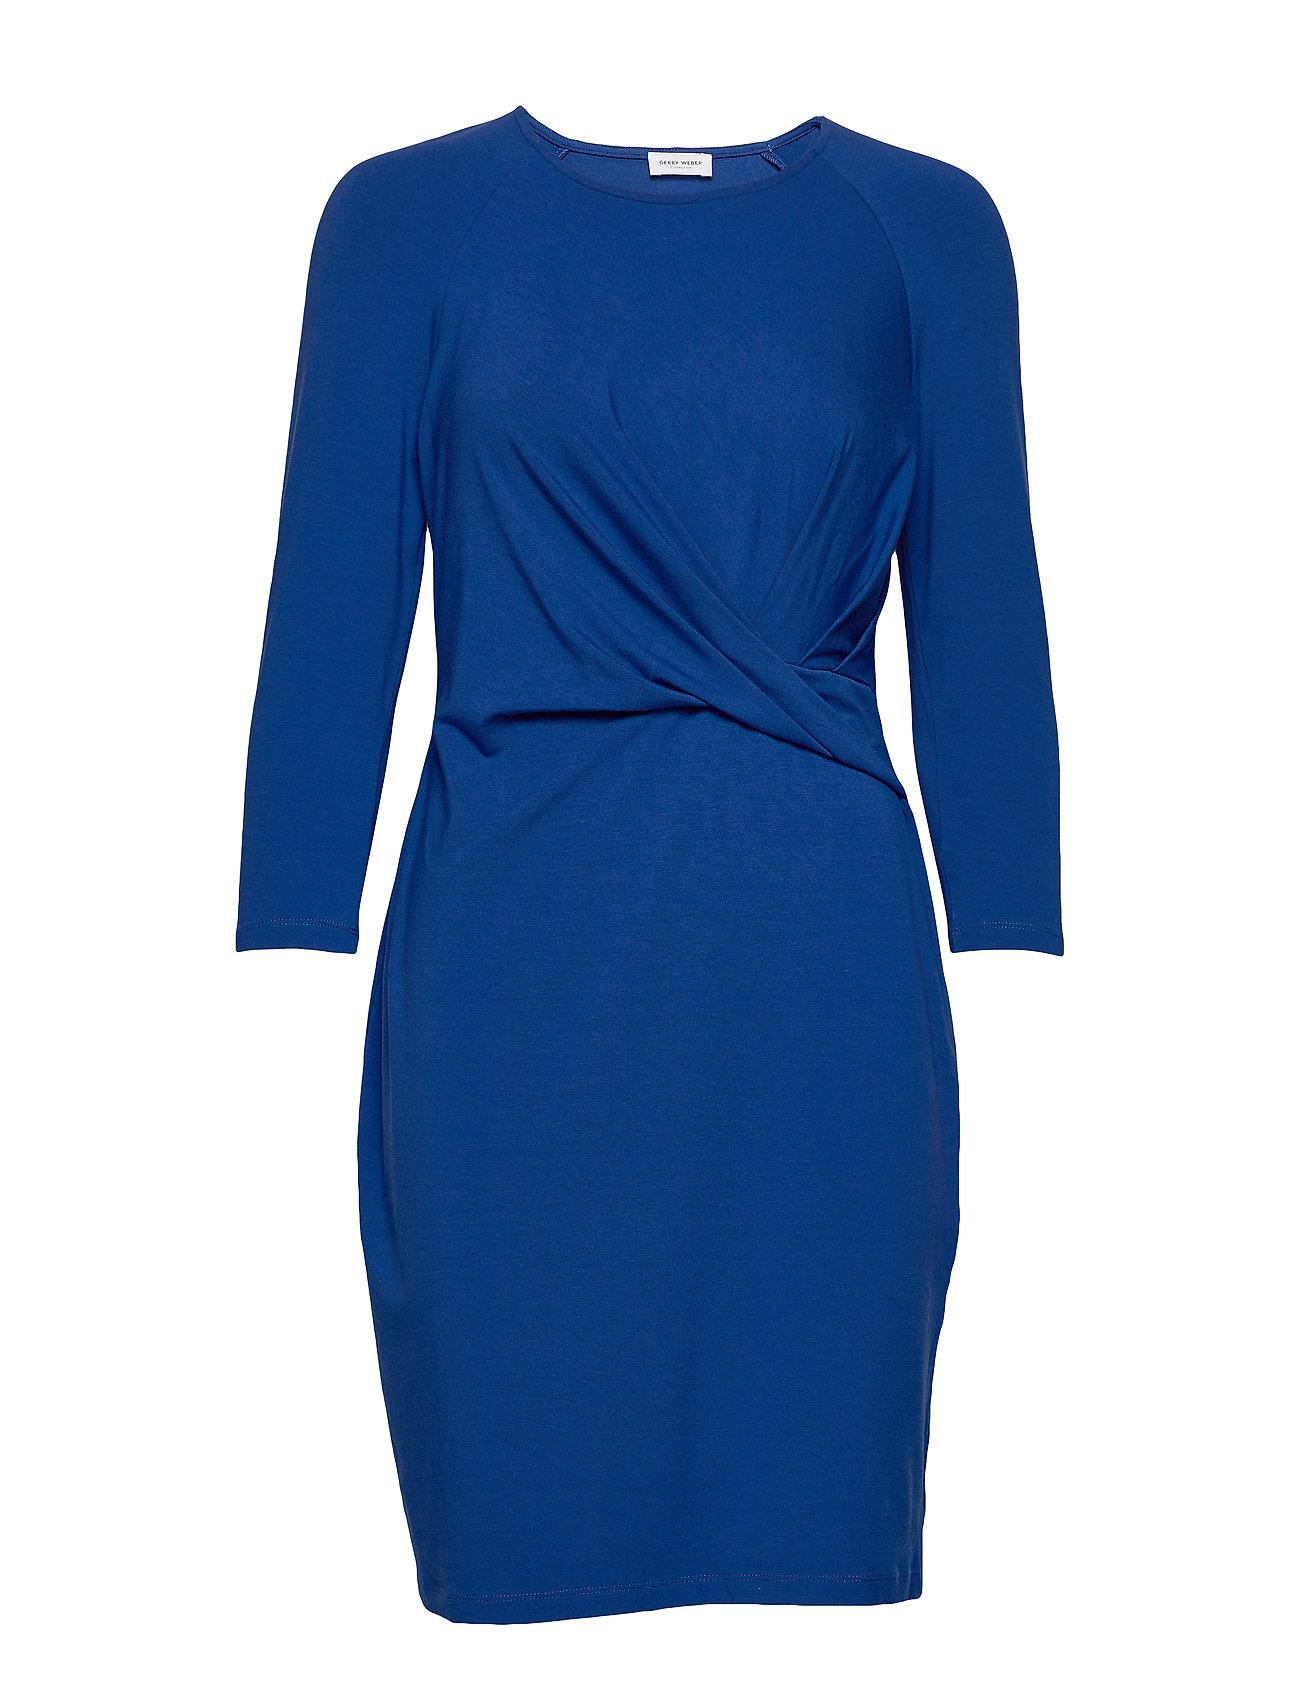 Gerry Weber DRESS KNITTED FABRIC - BLAZING BLUE